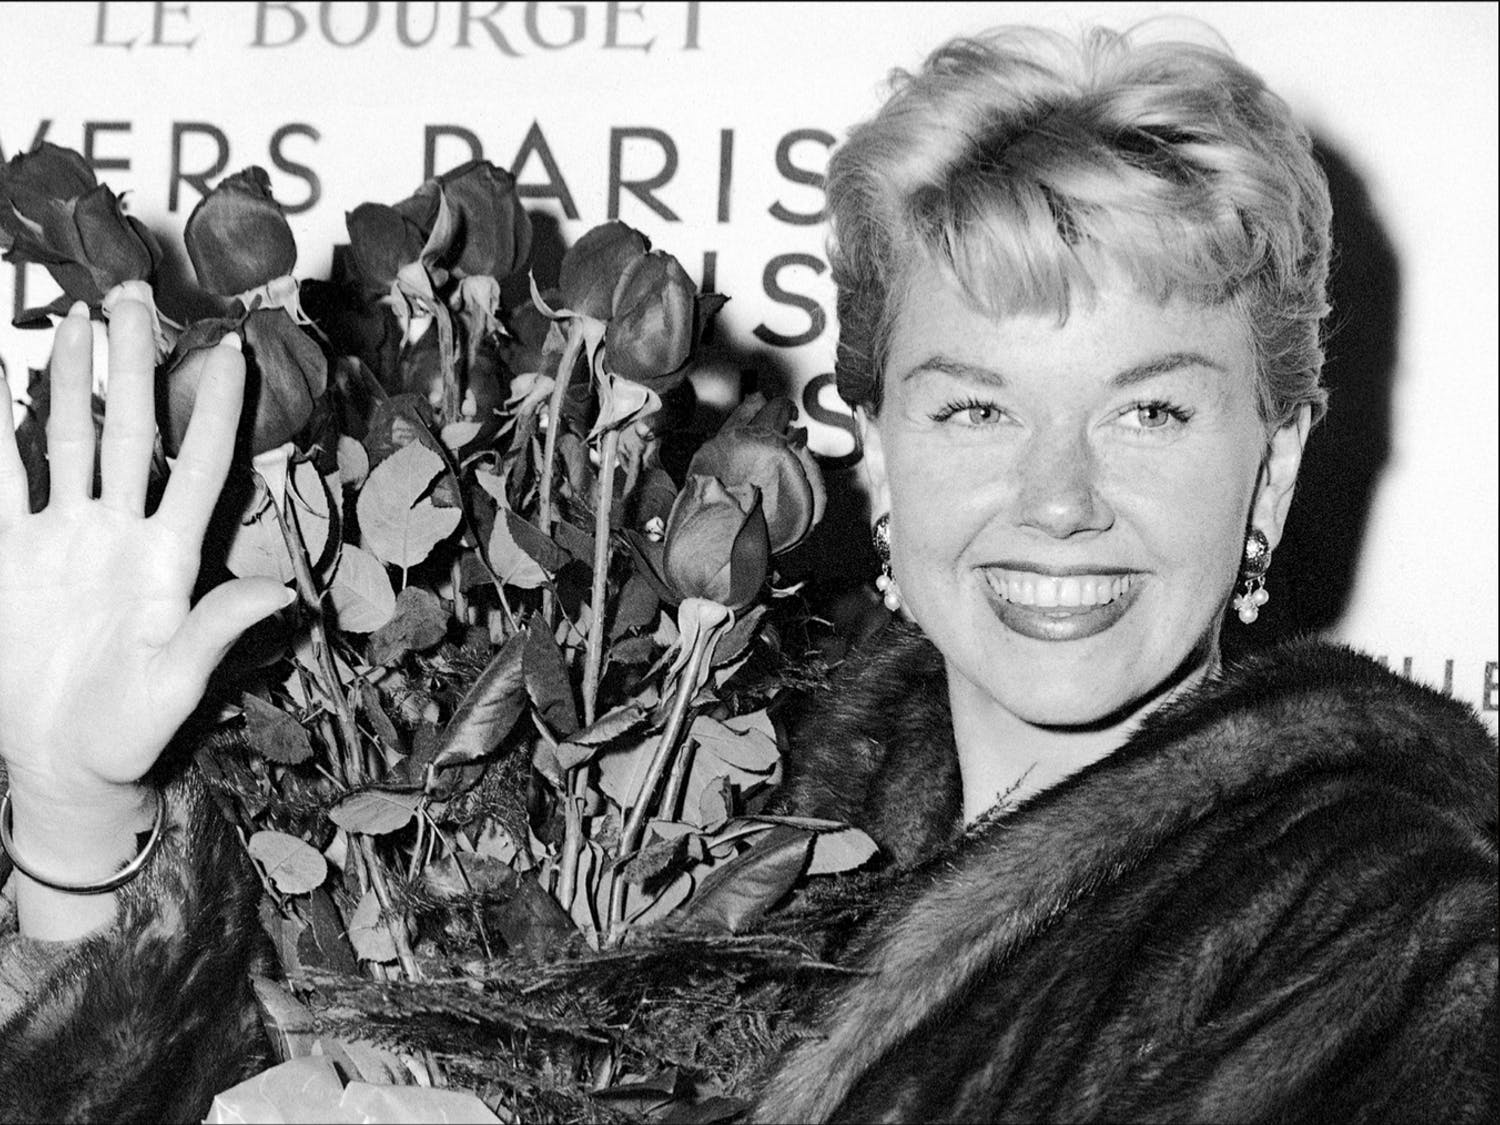 In this April 15, 1955, file photo, American actress and singer Doris Day holds a bouquet of roses at Le Bourget Airport in Paris after flying in from London. The Doris Day Animal Foundation confirmed Day died early Monday, May 13, 2019, at her home in Carmel Valley, Calif. She was 97.